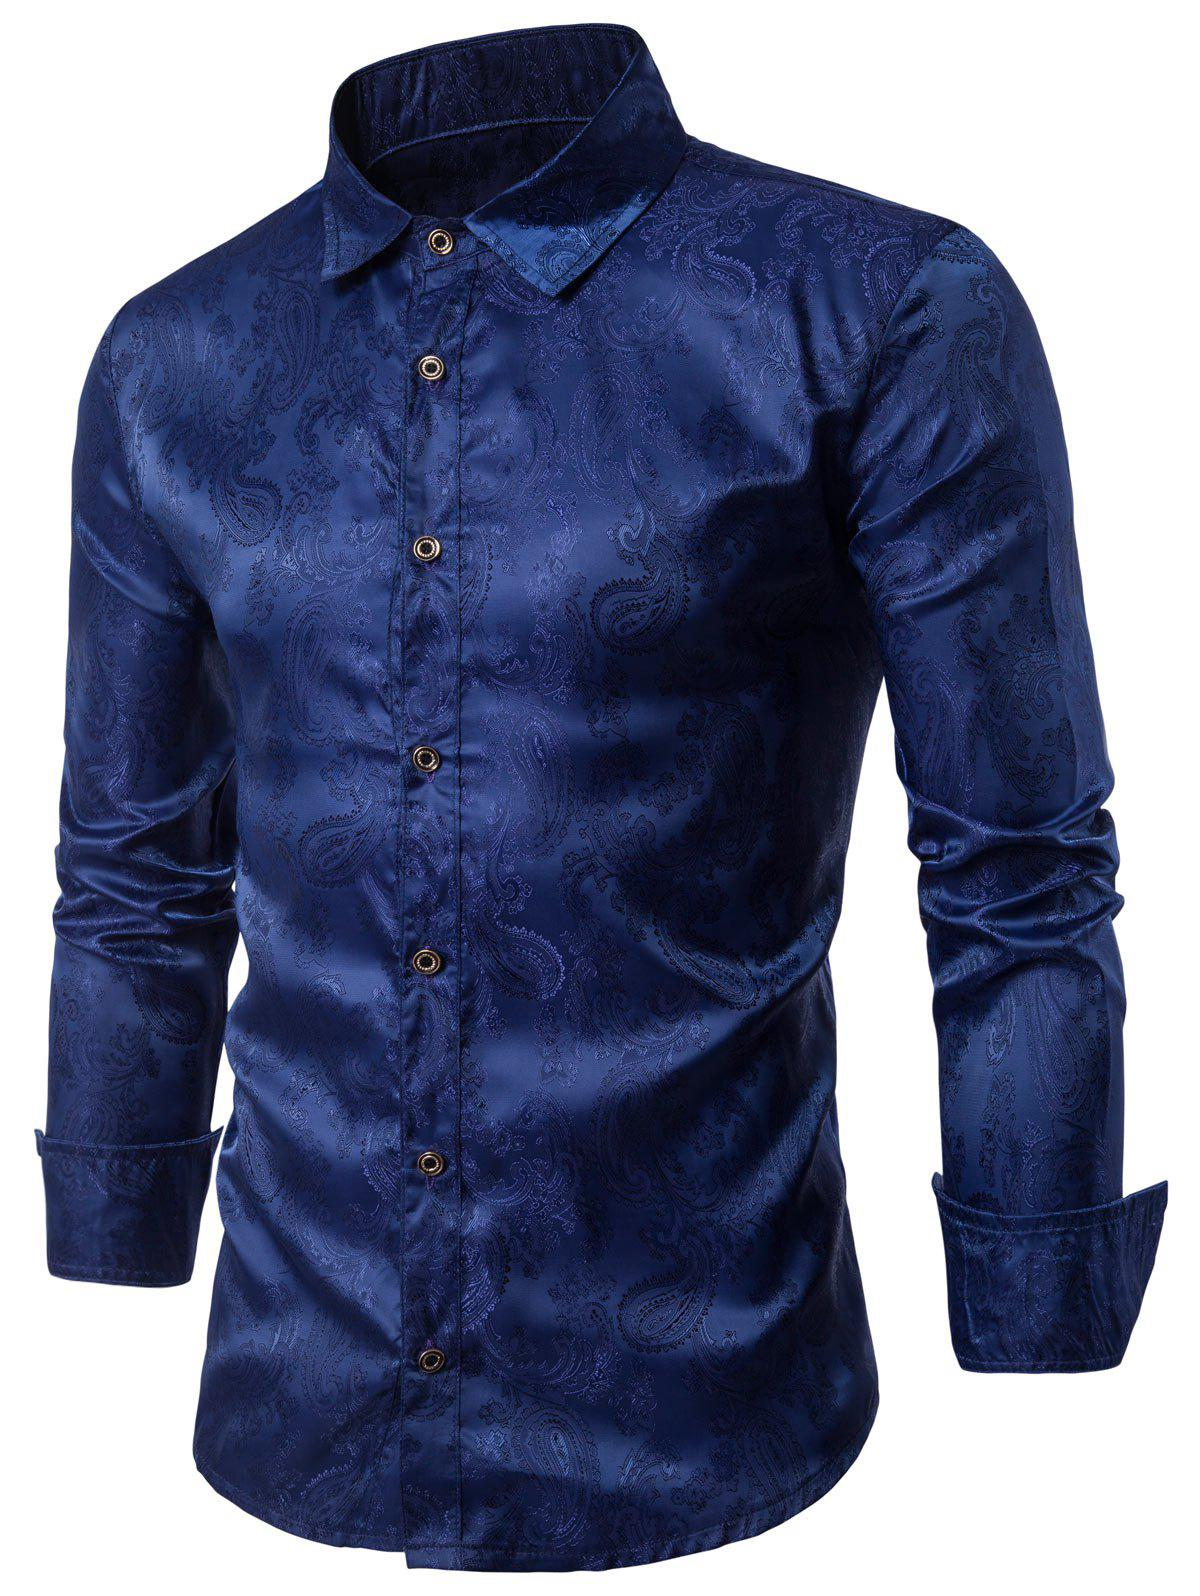 Long Sleeve Paisley Vintage ShirtMEN<br><br>Size: M; Color: CADETBLUE; Shirts Type: Casual Shirts; Material: Cotton,Polyester; Sleeve Length: Full; Collar: Turndown Collar; Pattern Type: Floral; Weight: 0.1770kg; Package Contents: 1 x Shirt;